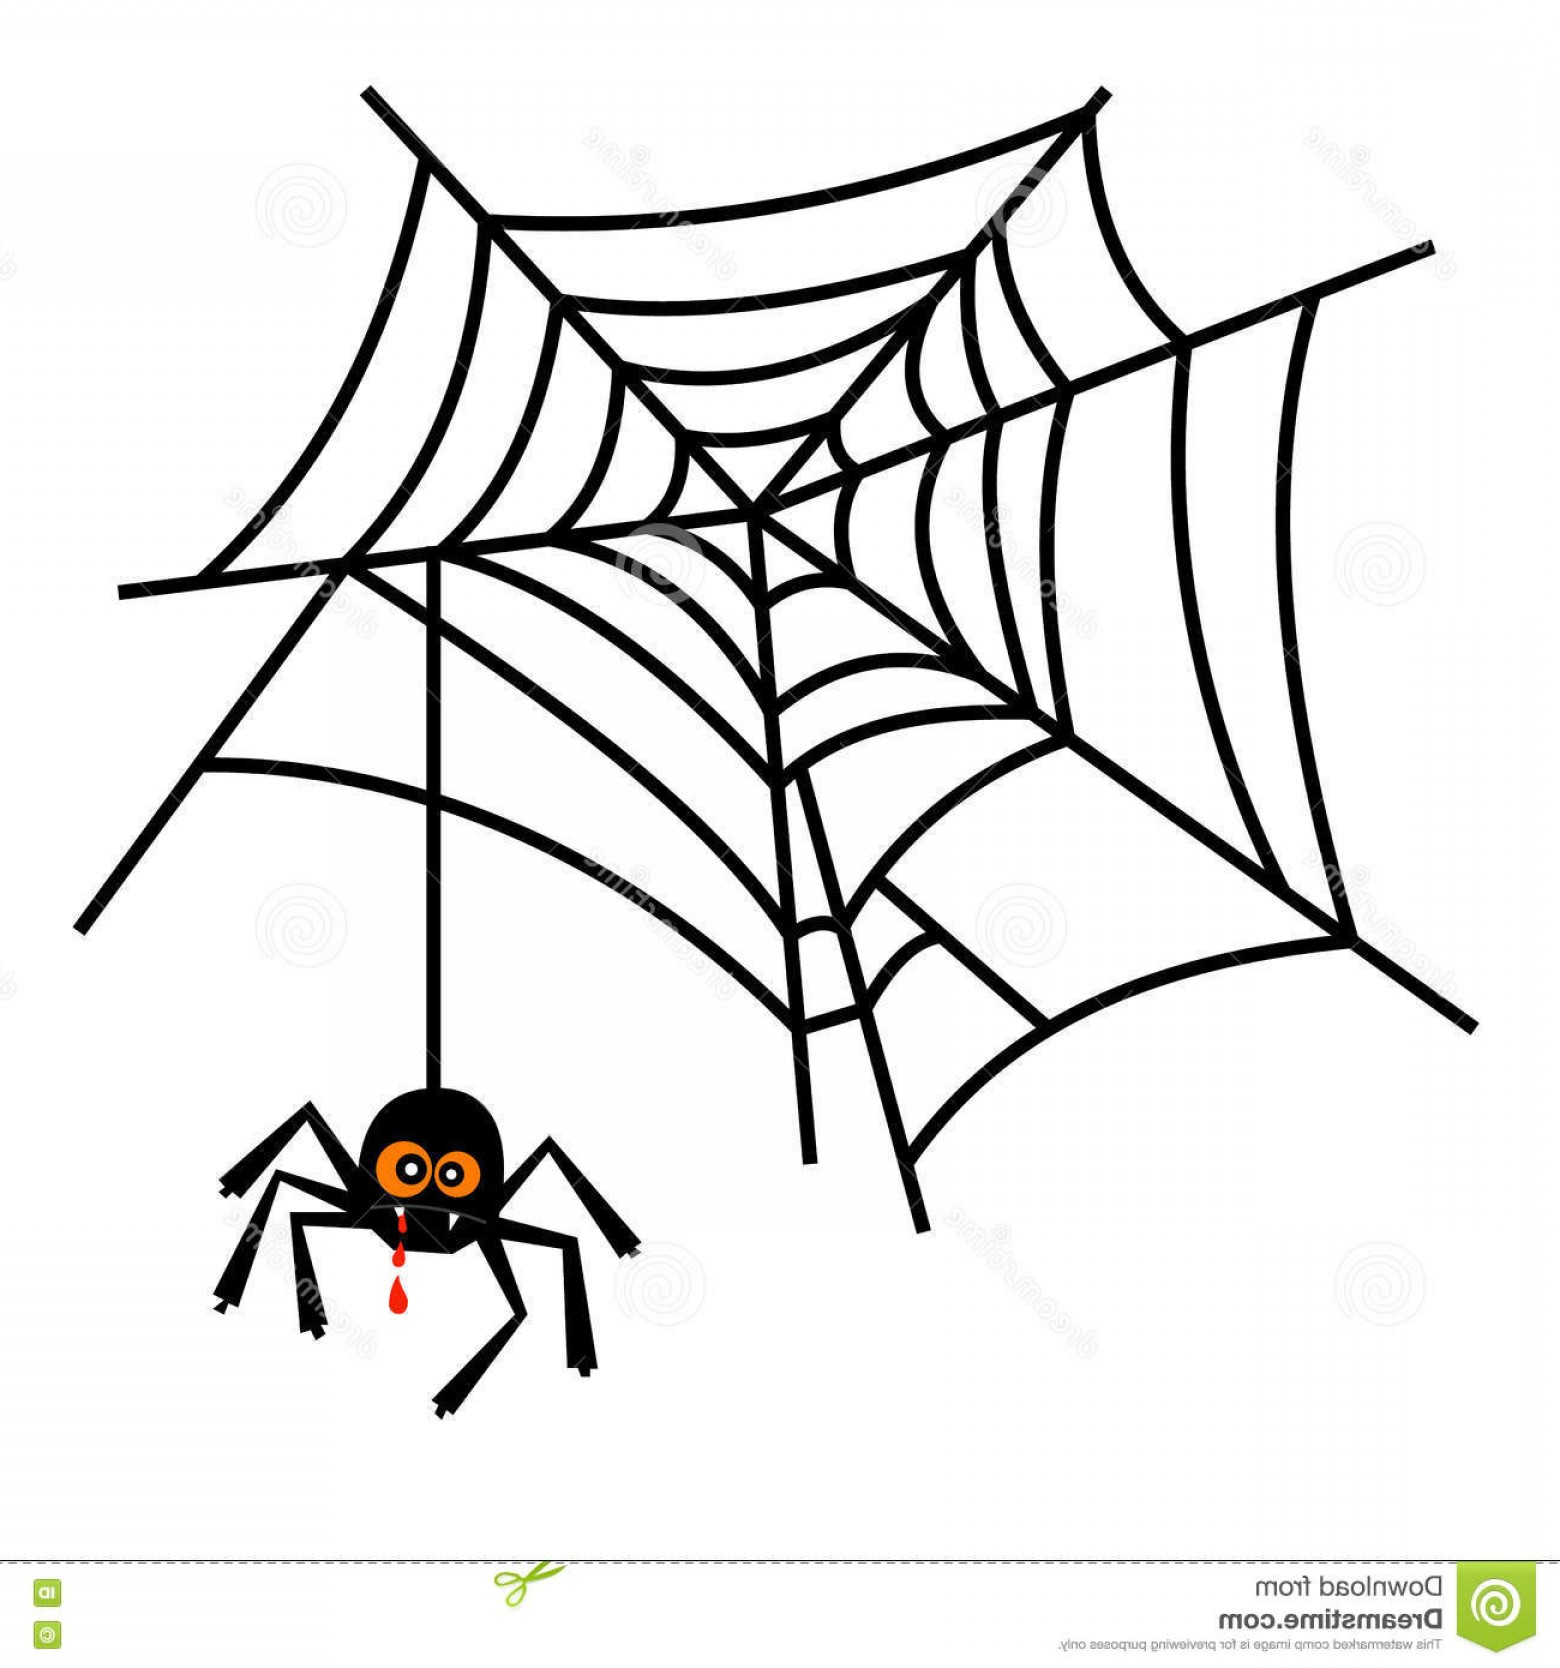 Cute But Deadly Vector: Stock Illustration Halloween Cute Spider Web Vector Isolated White Background Image